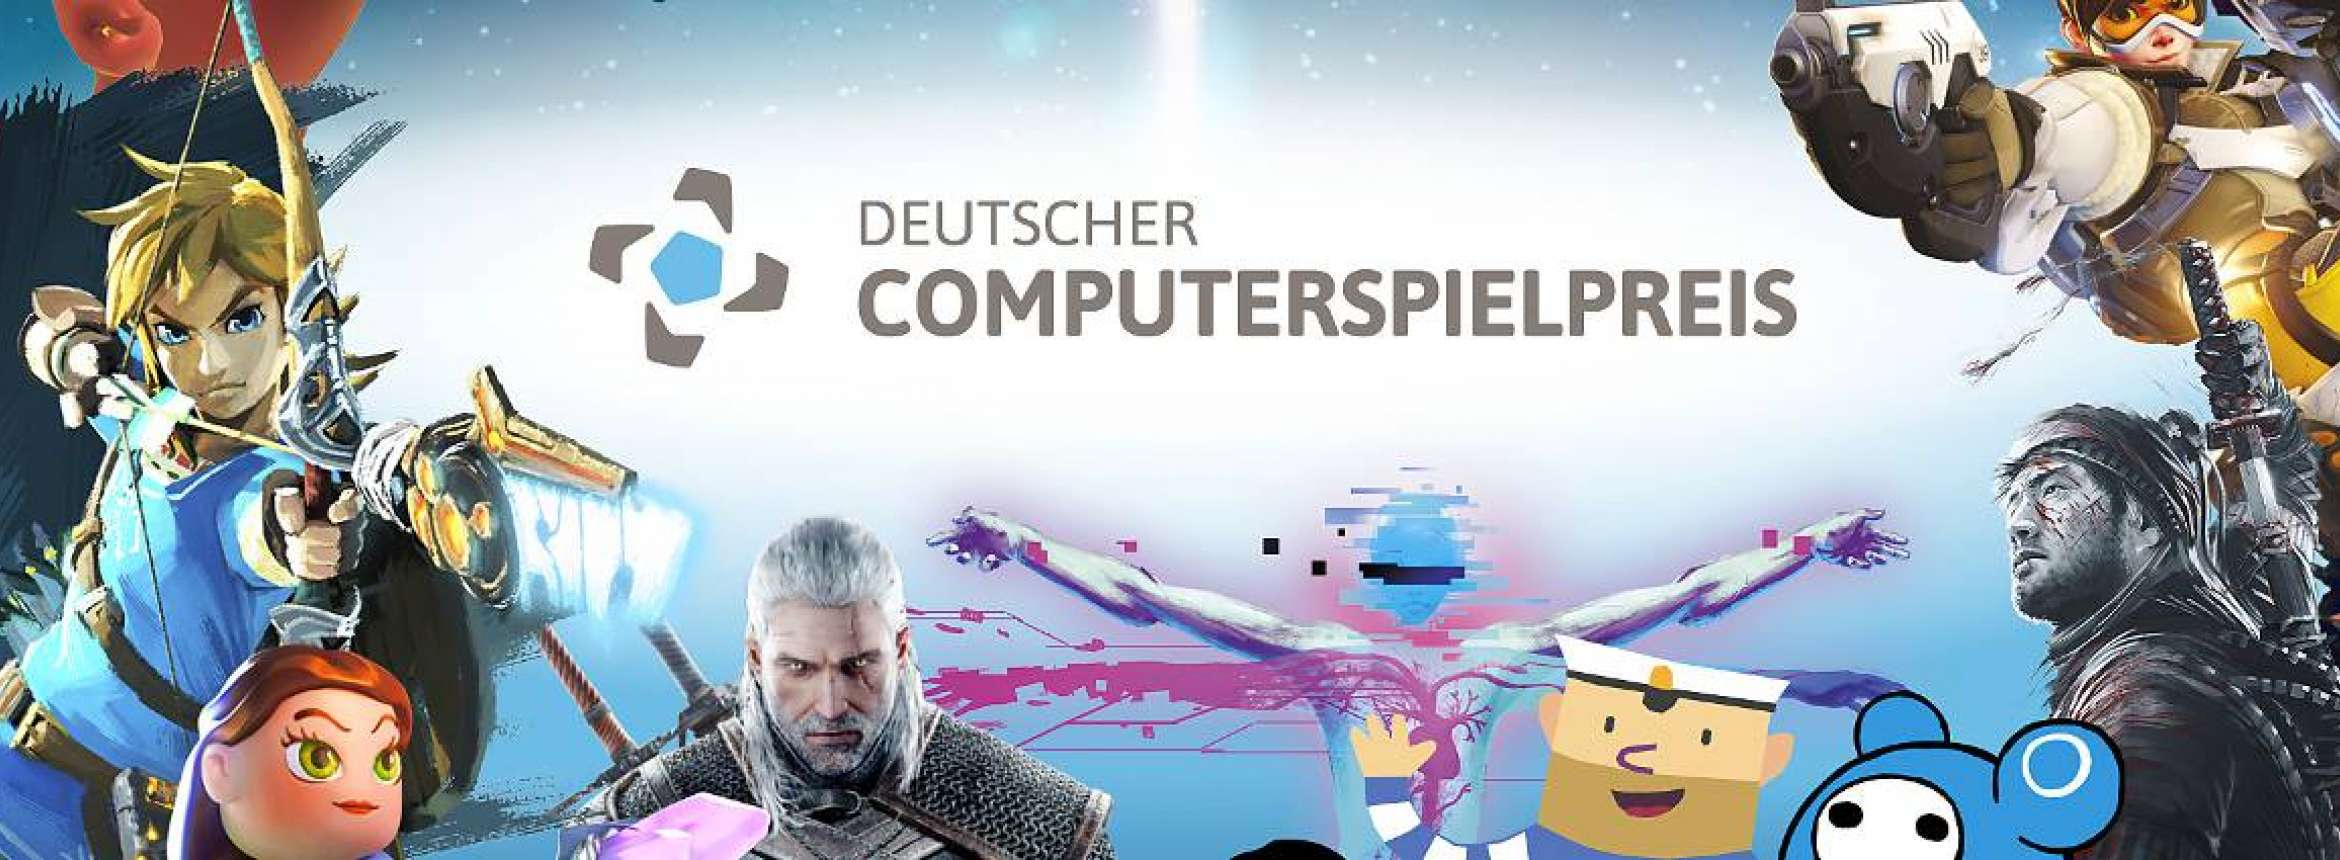 deutscher-computerspi4zuno.jpg